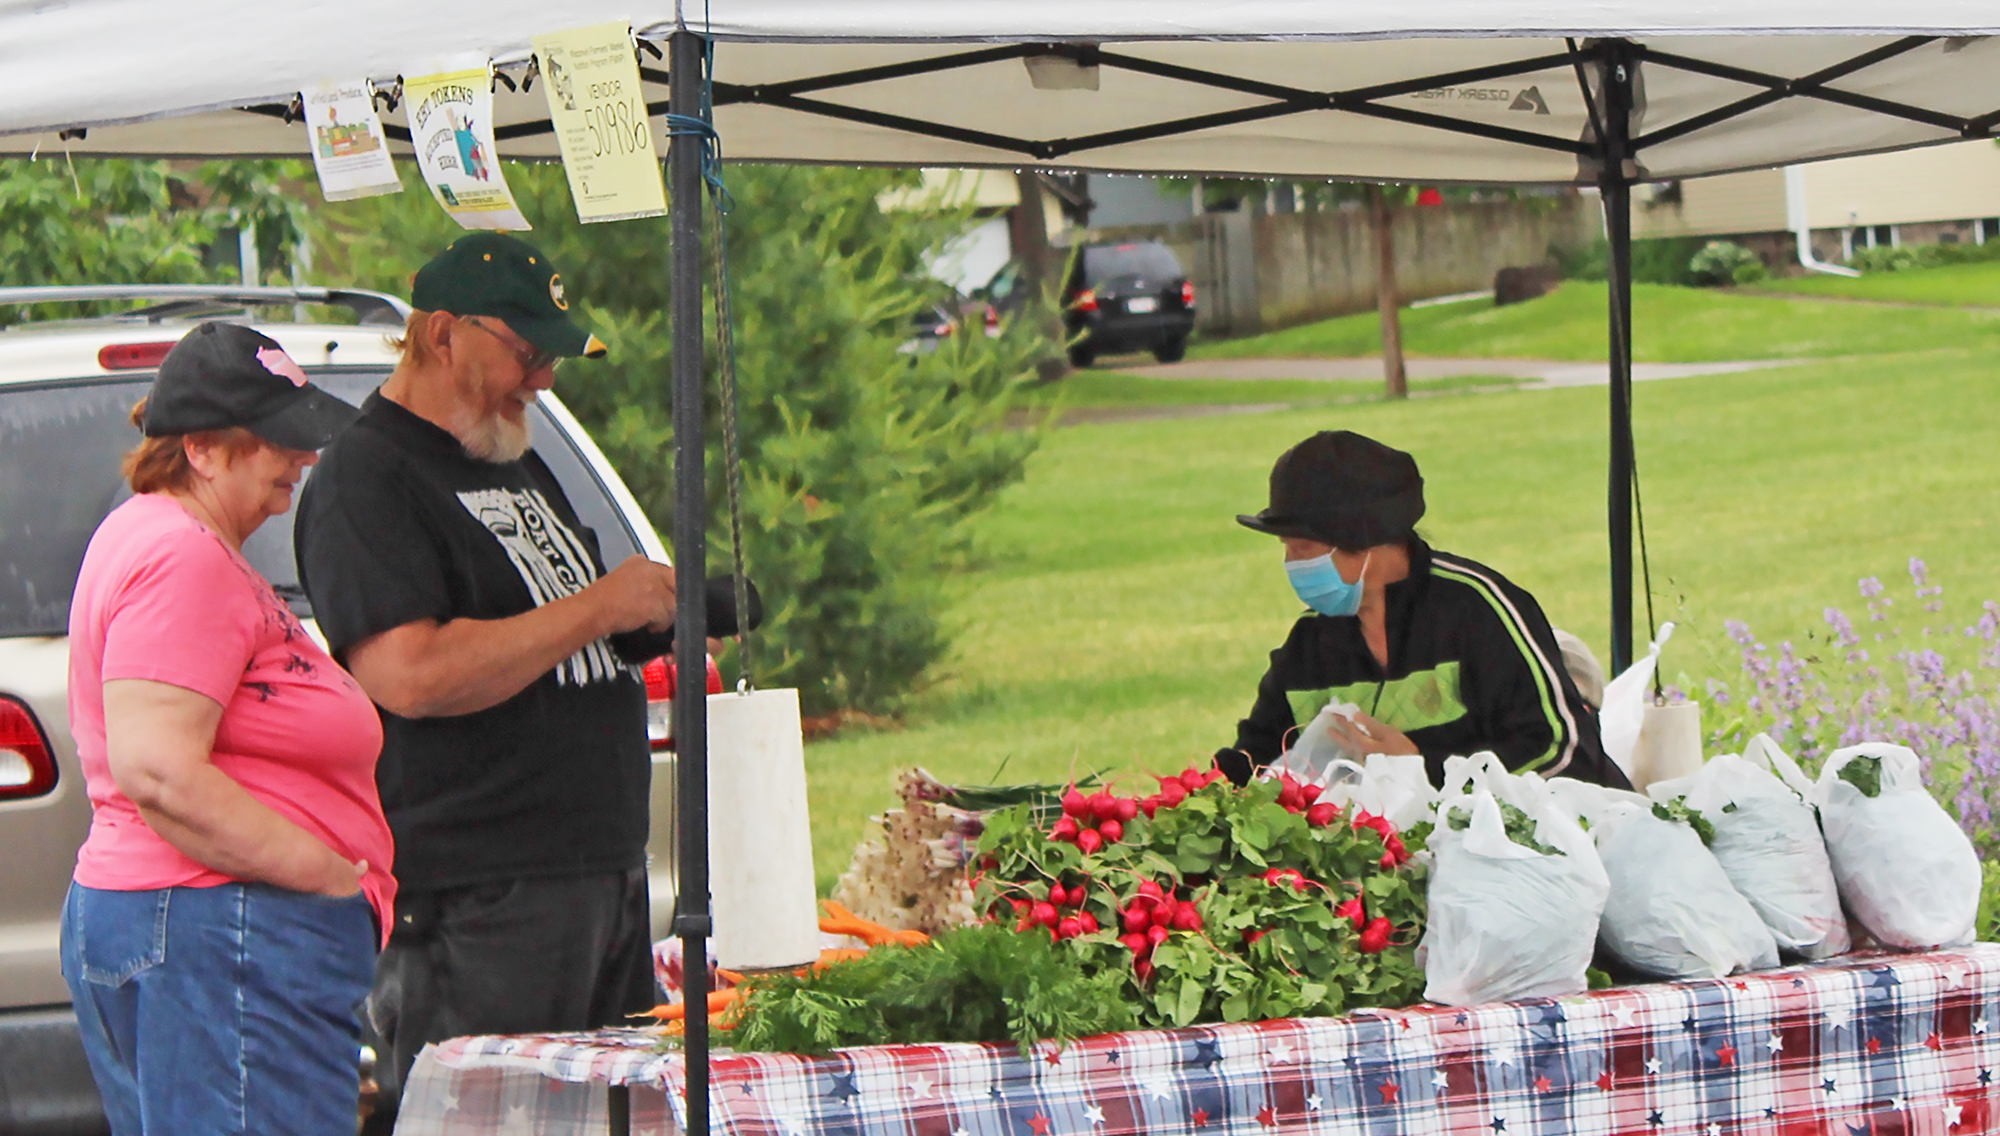 """Jolene and Peter Daniel, left, complete a purchase from Zoua Lee, right, on June 20 at the season's first Shawano Farmers Market at Franklin Park. Although the couple was called """"diehards"""" by another vendor, Peter said, """"I just like all of the fresh veggies."""" The farmers market will take place every Saturday through Oct. 3.David Wilhelms"""